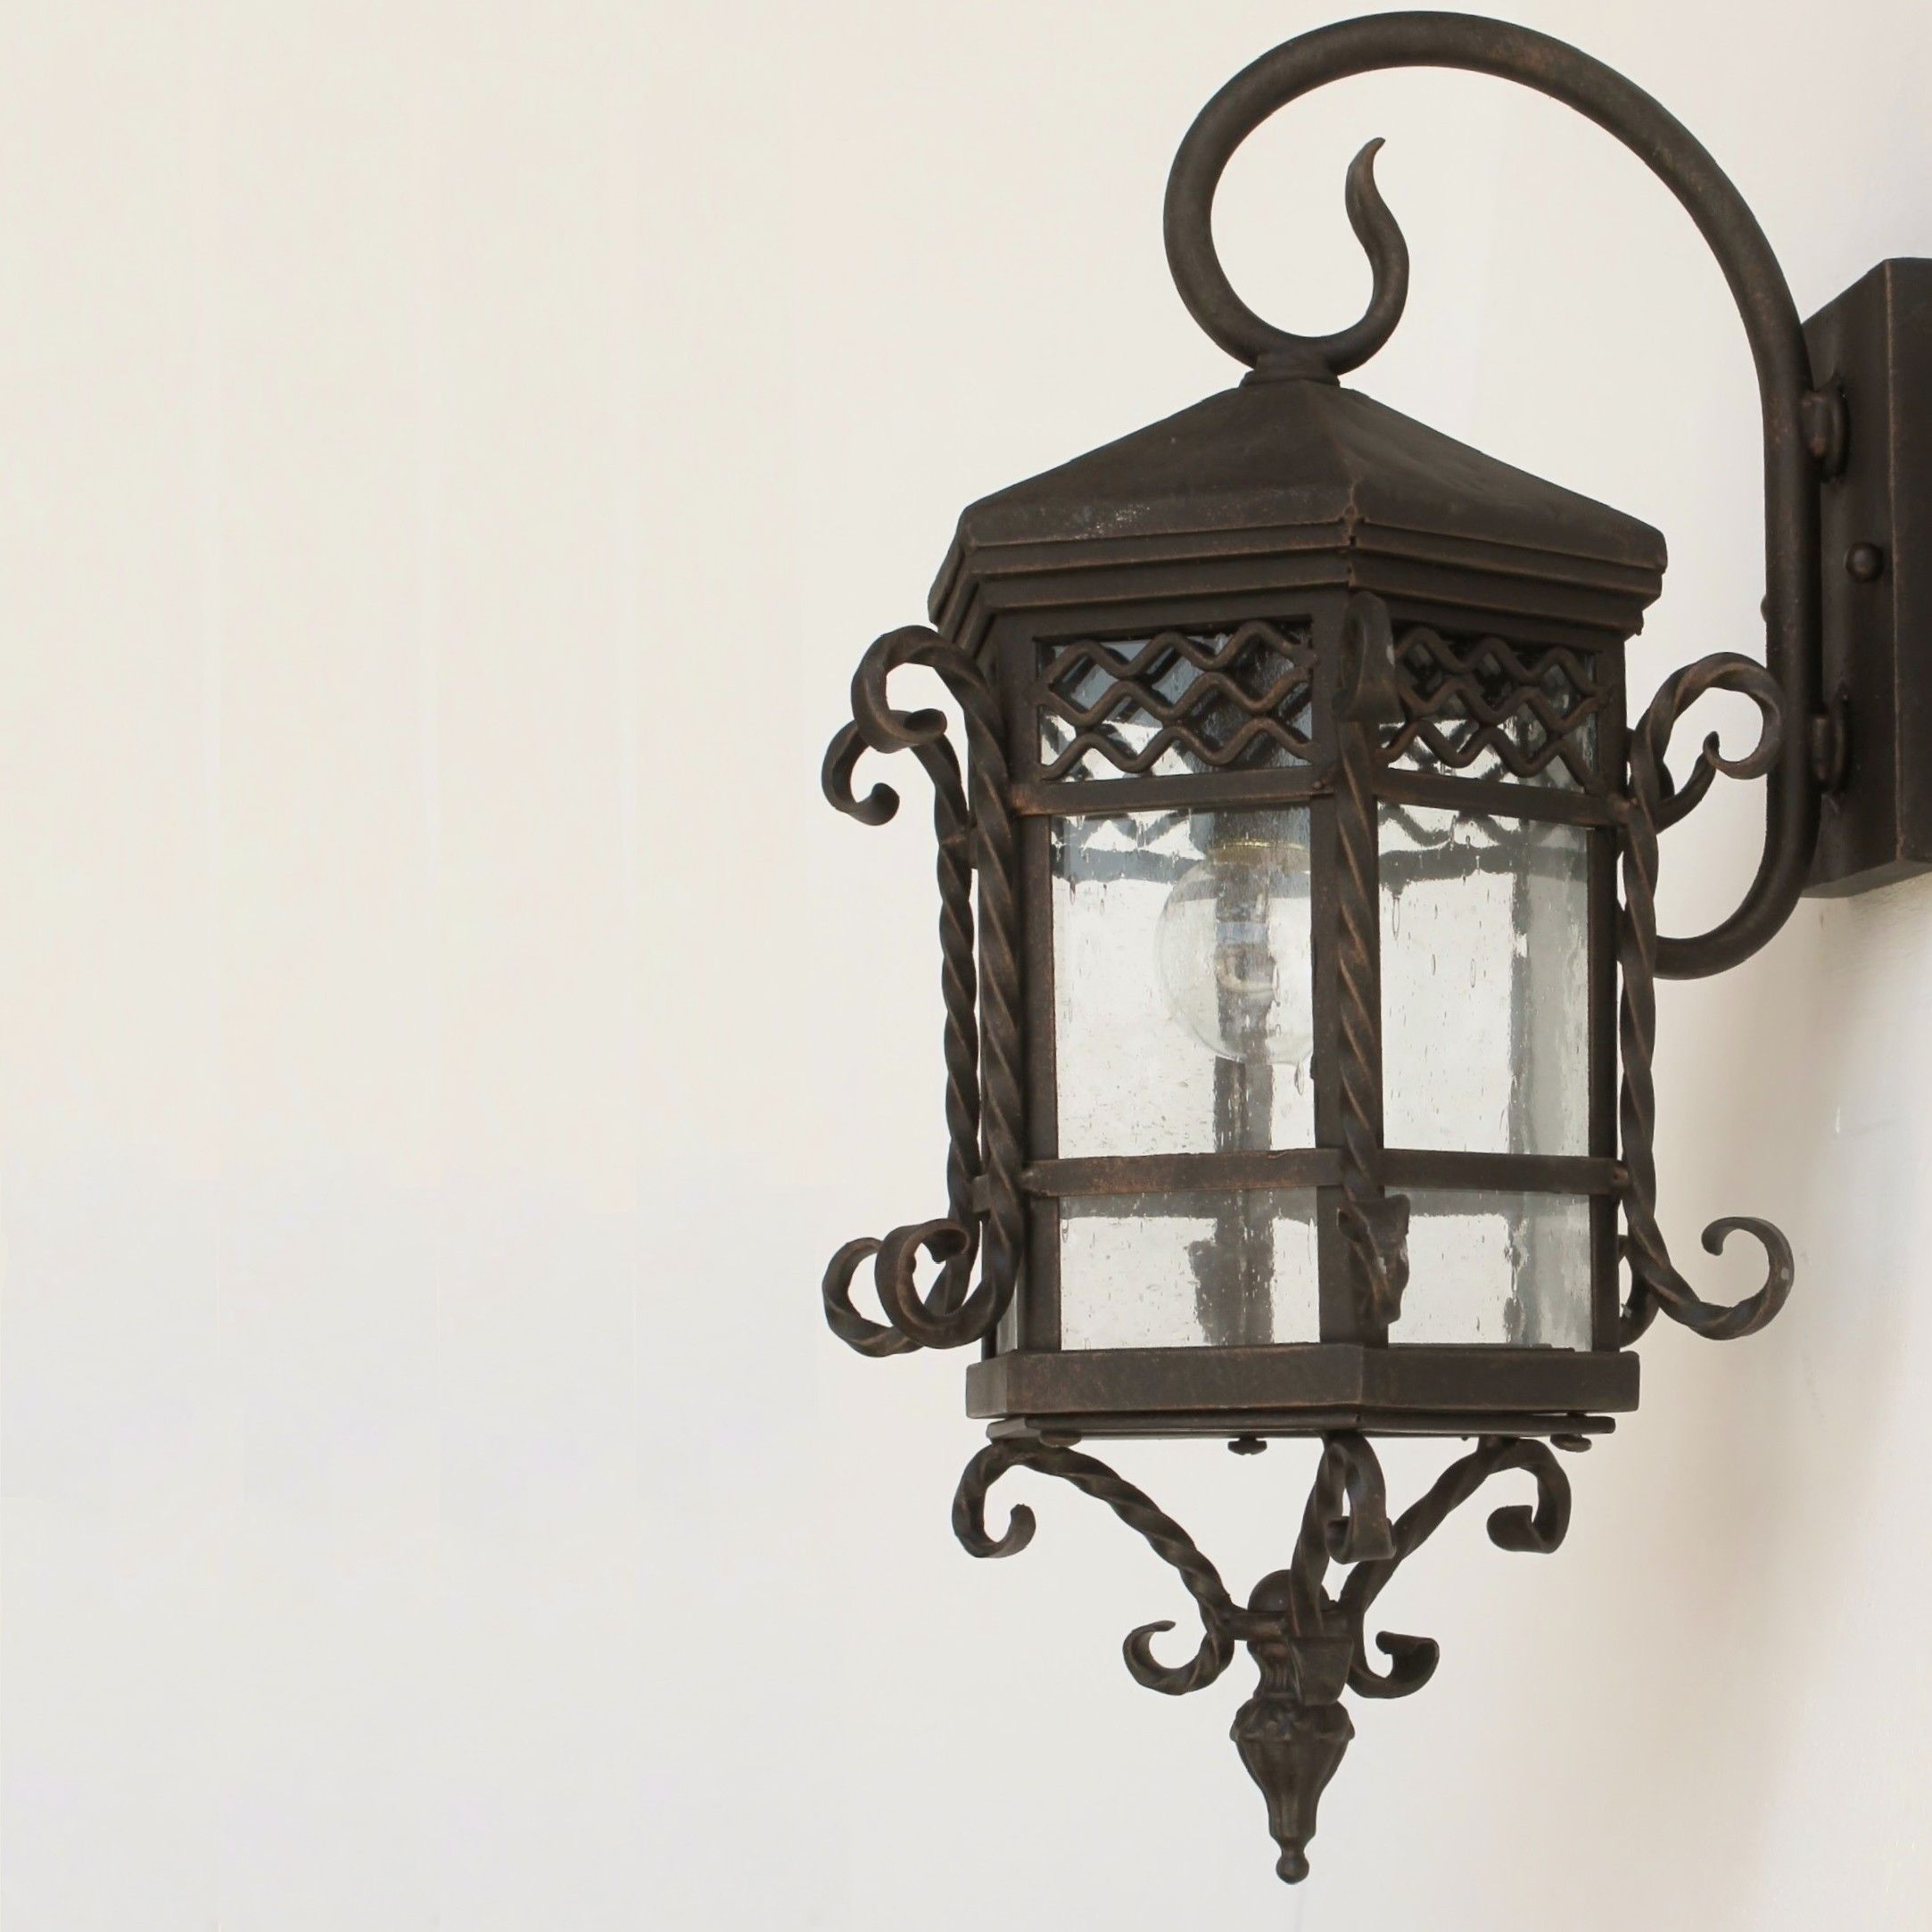 Spanish Revival Colonial Wall Lantern